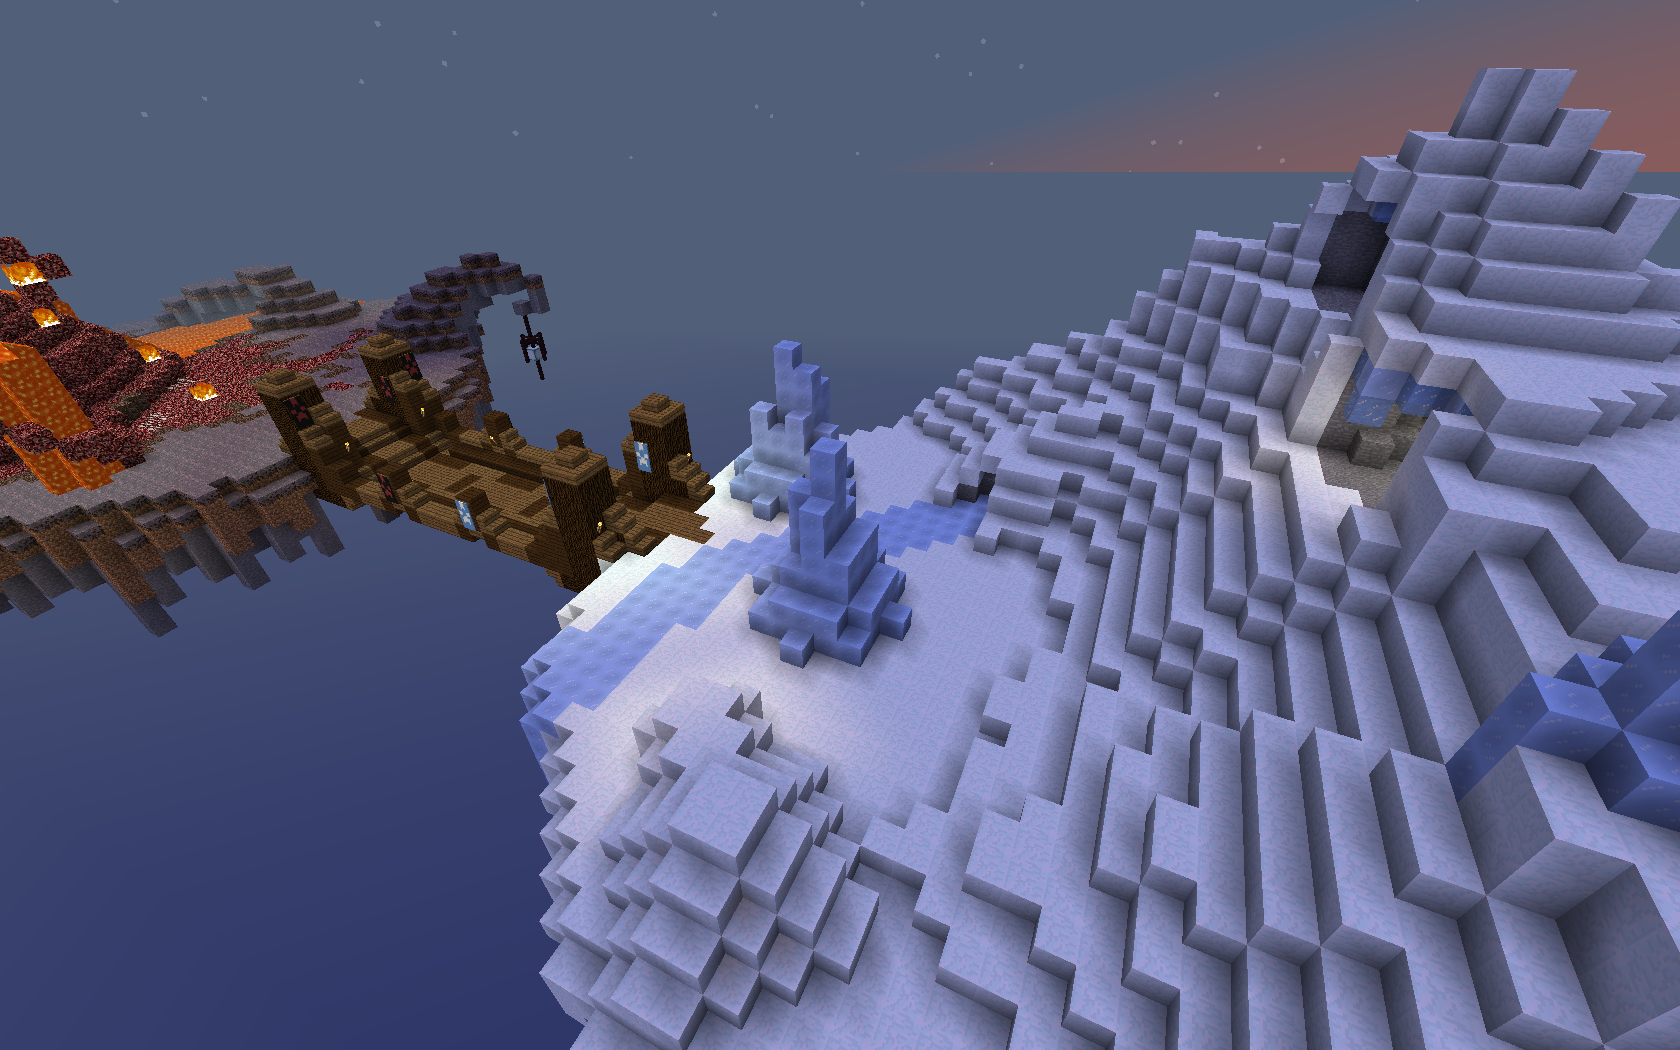 minecraft pvp forever fight biting fire burning cold